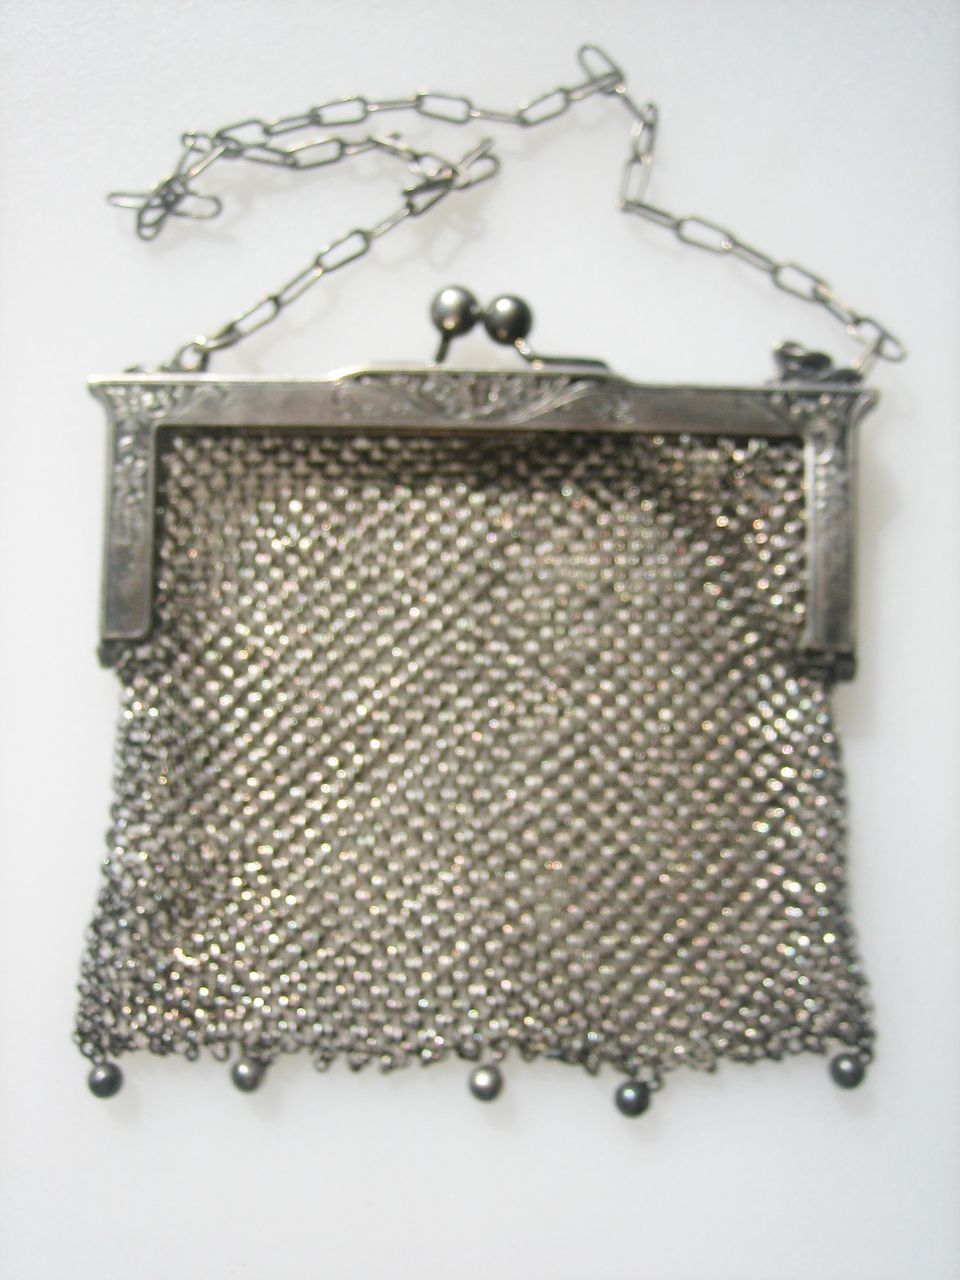 Reasonable Antique Art Nouveau Floral German Silver Frame 5 Ball Fringe Mesh Coin Purse A Great Variety Of Goods Vintage Bags, Handbags & Cases